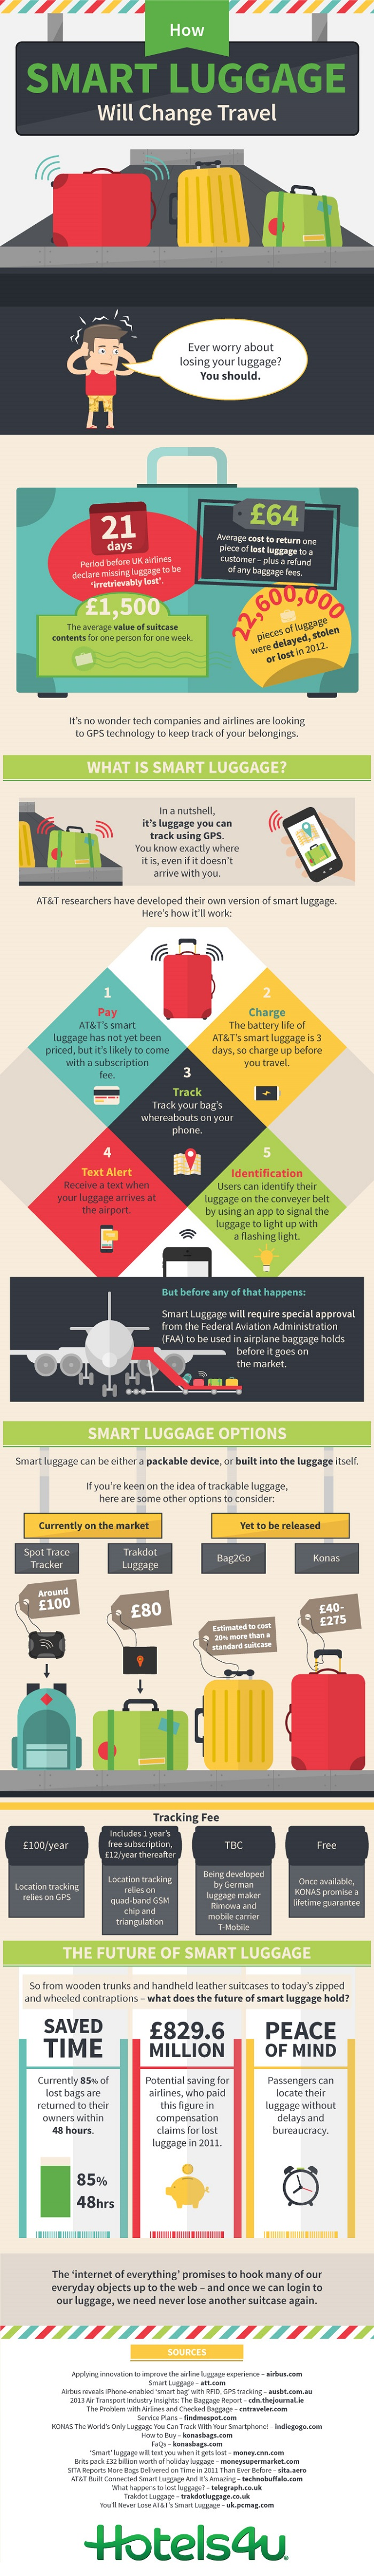 Smart Luggage Change Travel Infographic